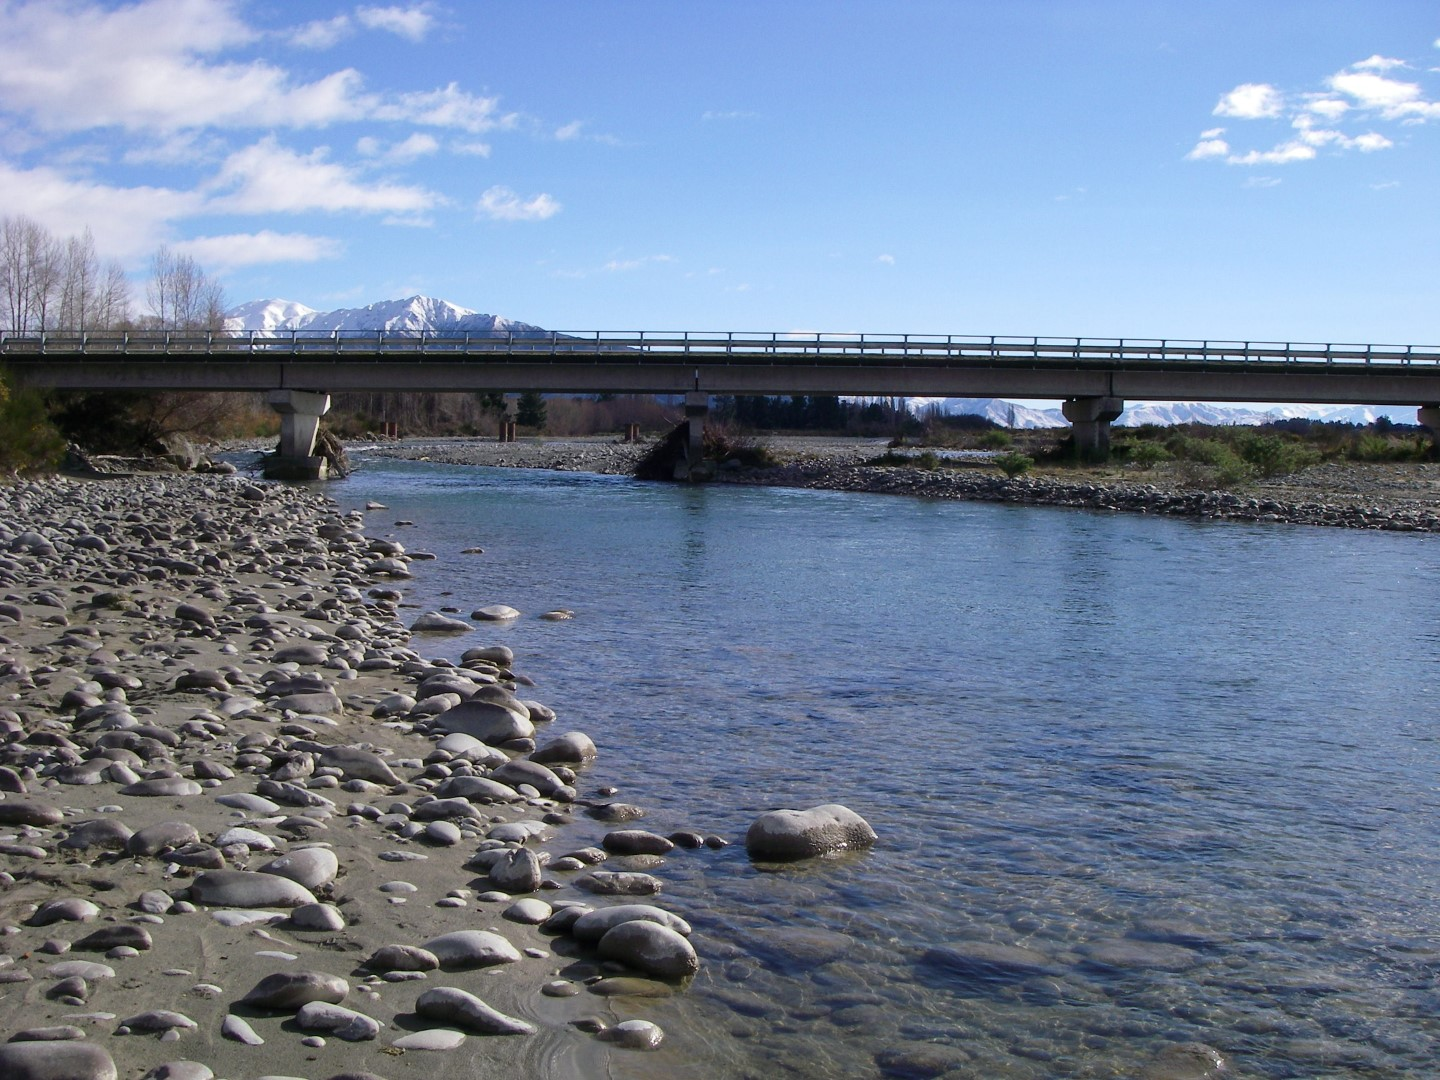 Rangitata River